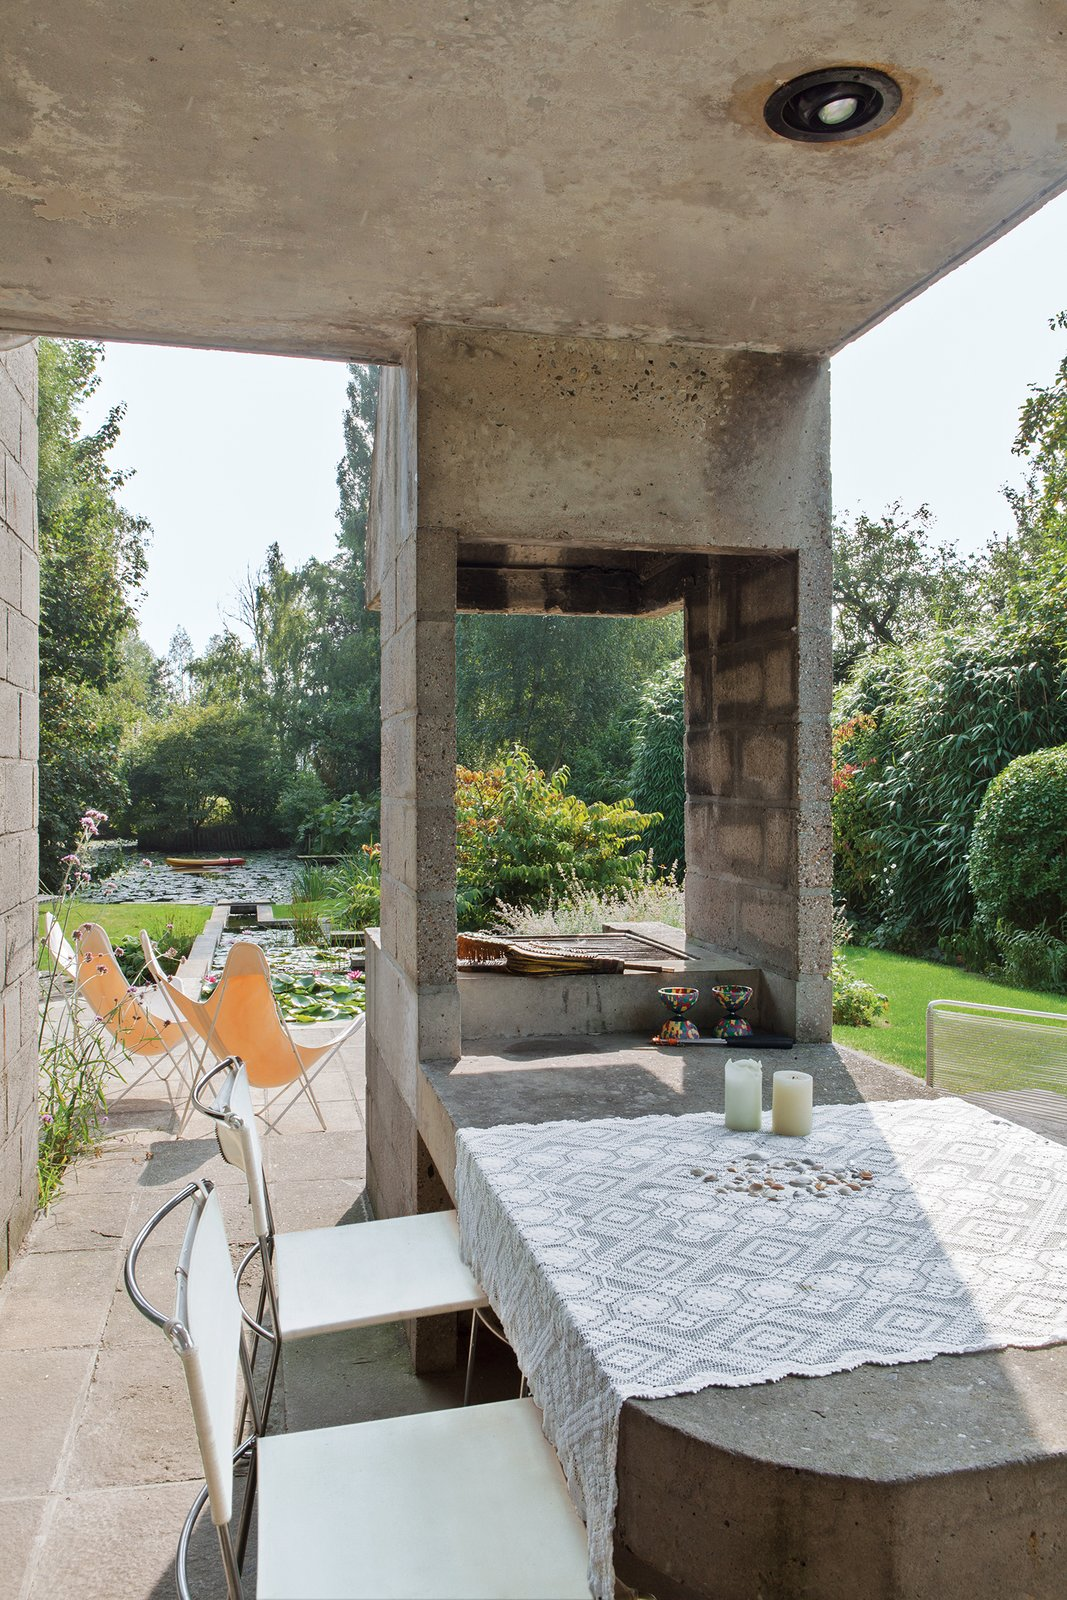 The dining room leads onto a terrace with a built-in concrete table and barbecue that are original to Raman and Schaffrath's design. A pair of Hardoy butterfly chairs from Knoll are positioned by the pond.